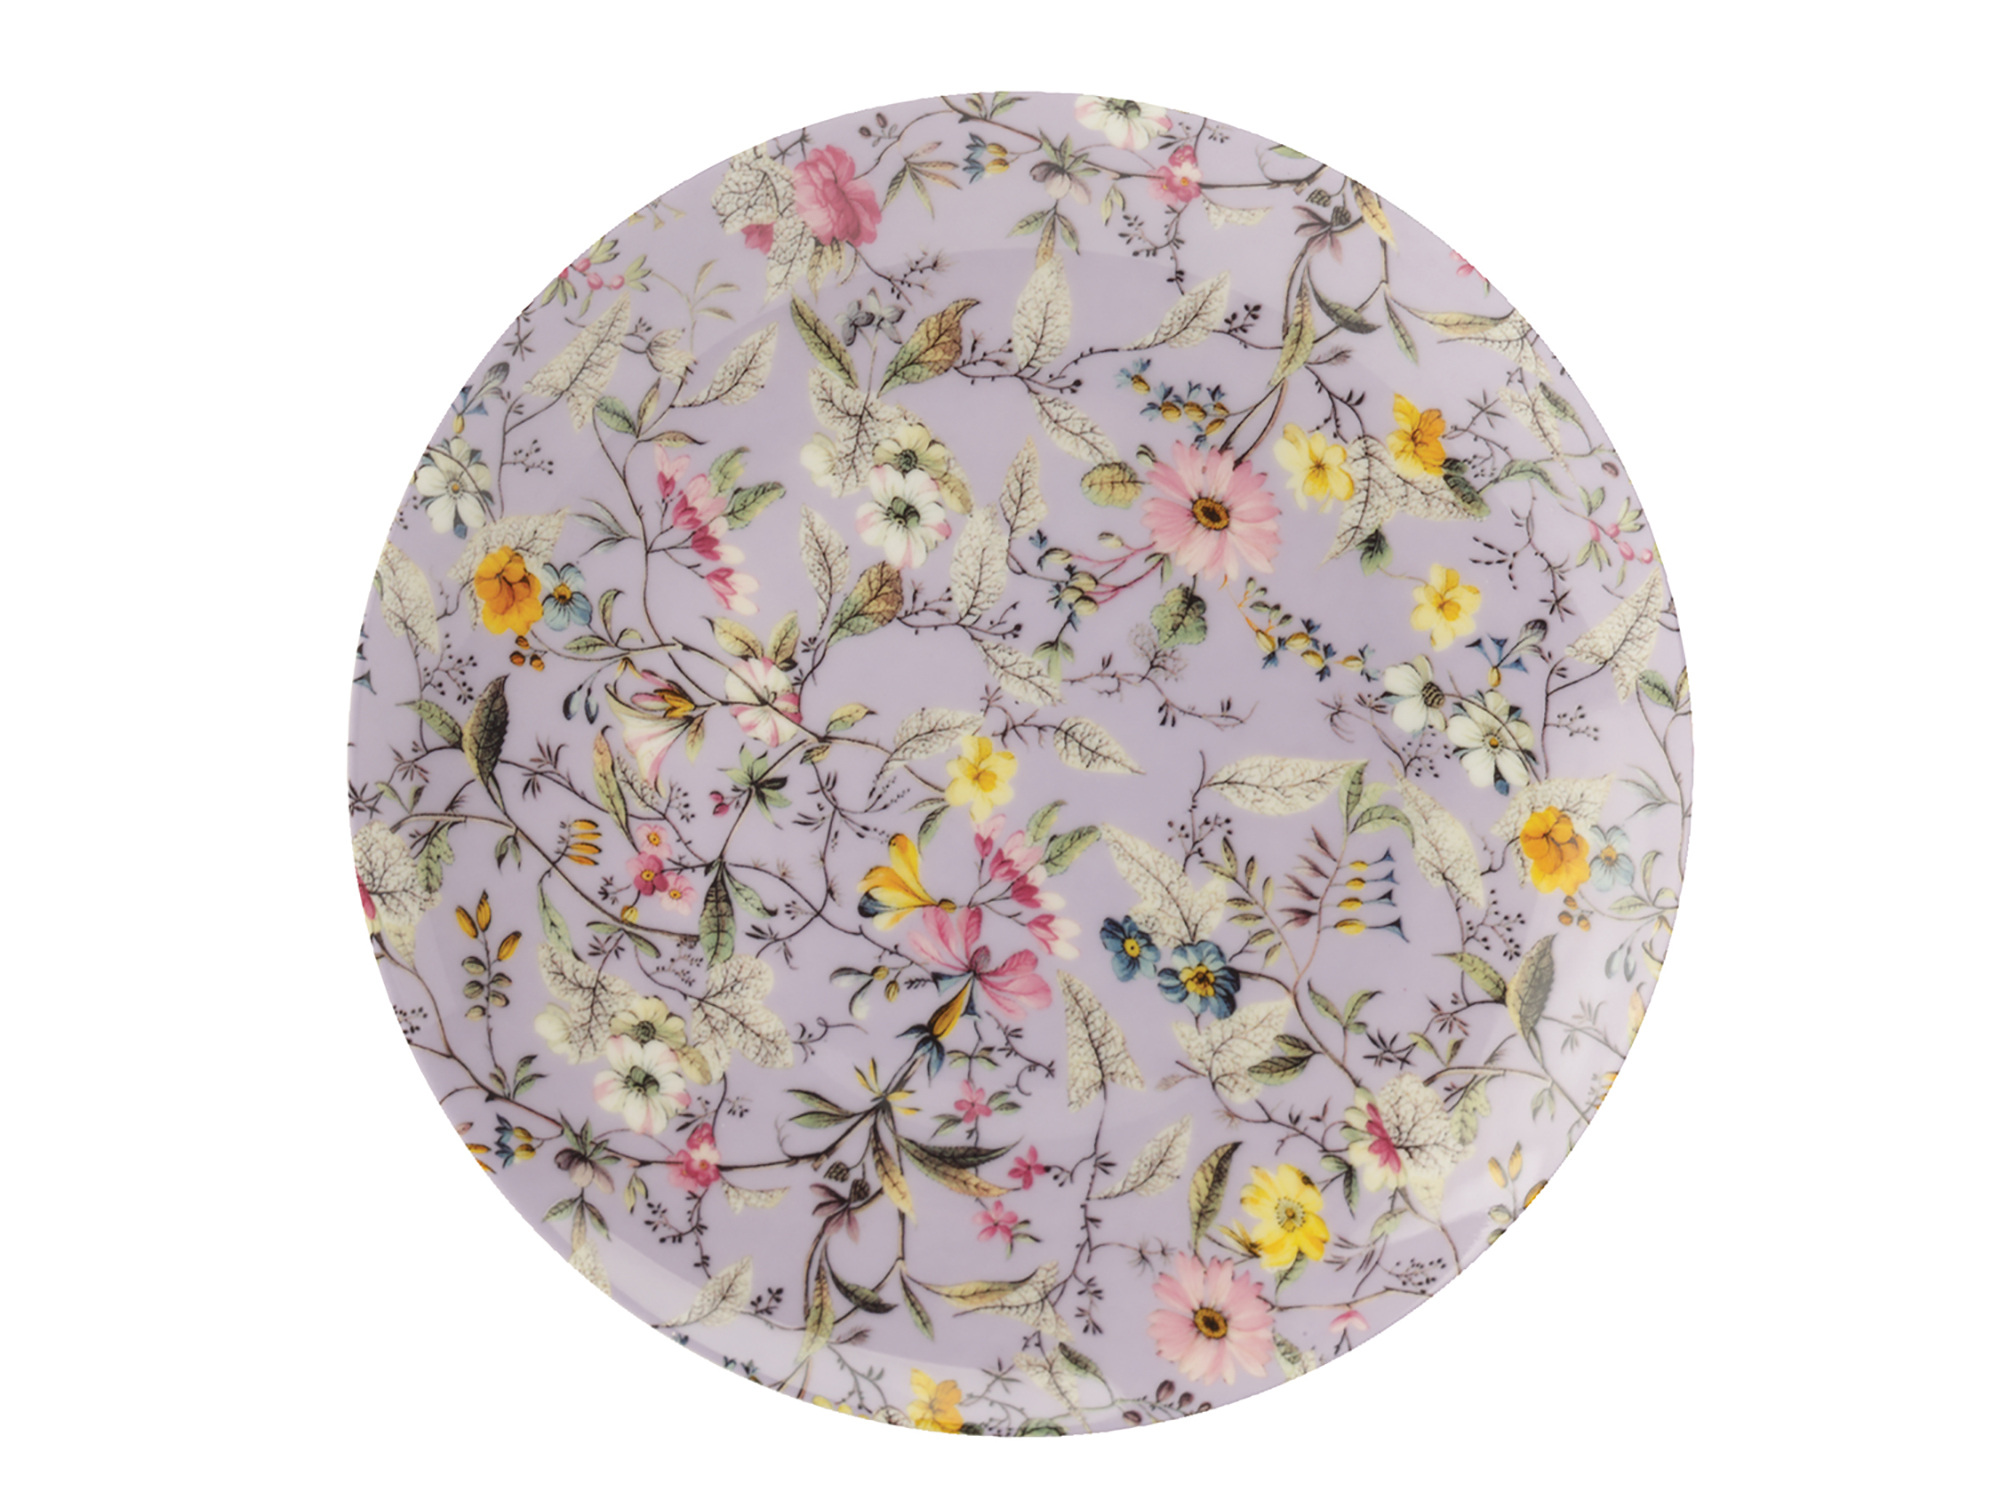 Maxwell & Williams William Kilburn Winter Bloom 20Cm Plate Gift Boxed